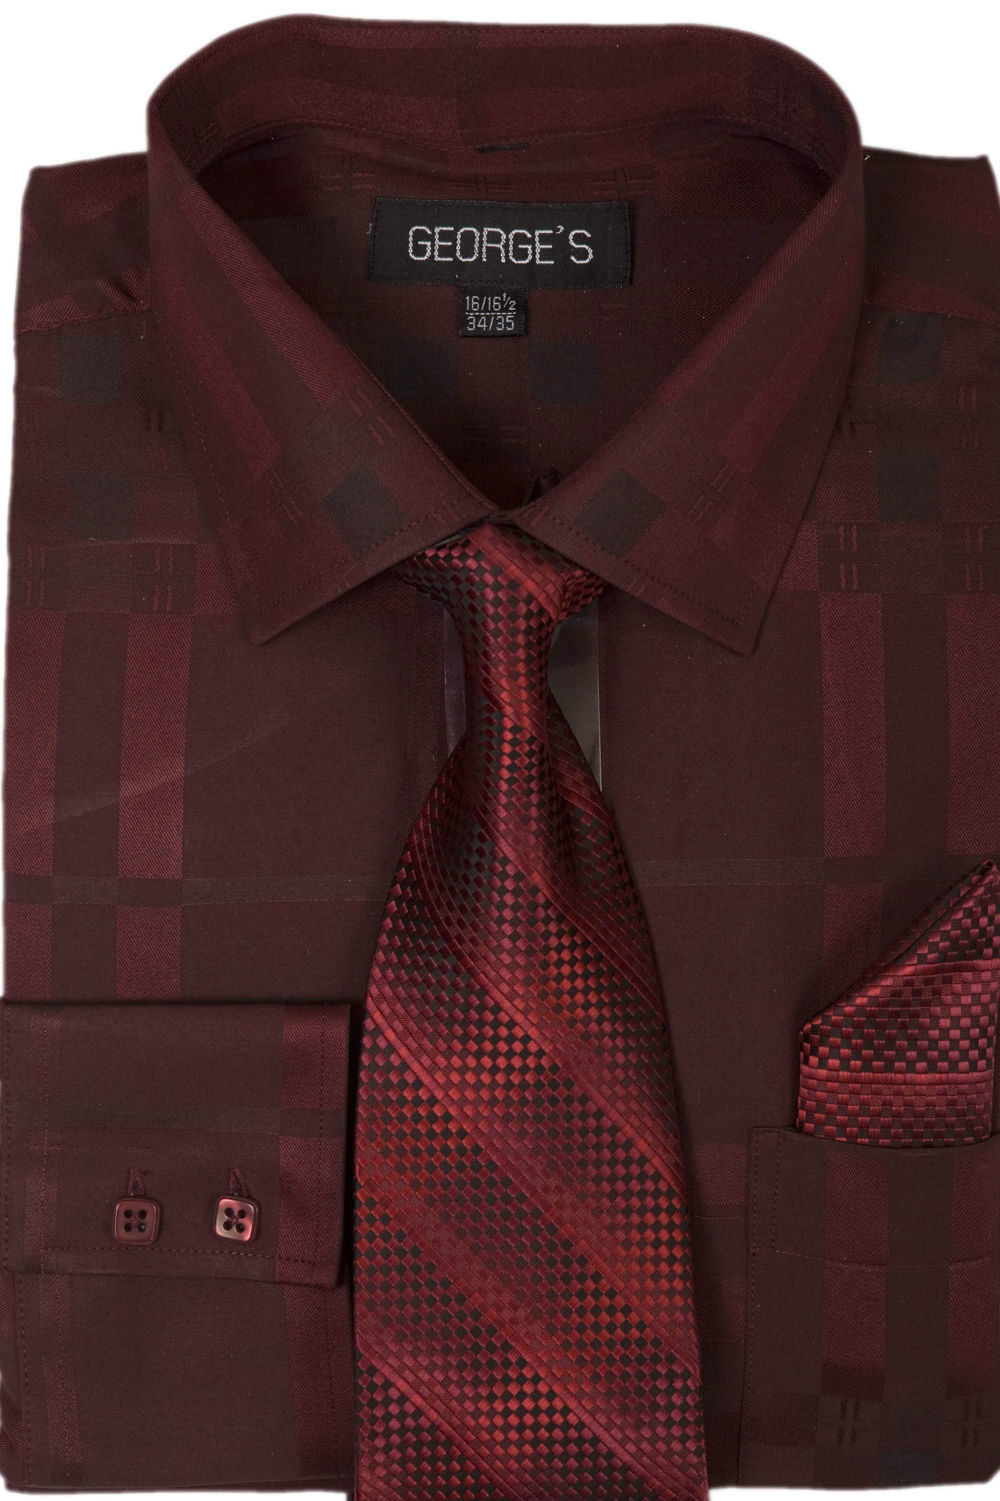 Milano Moda Men Shirt AH623-Burgundy - Church Suits For Less